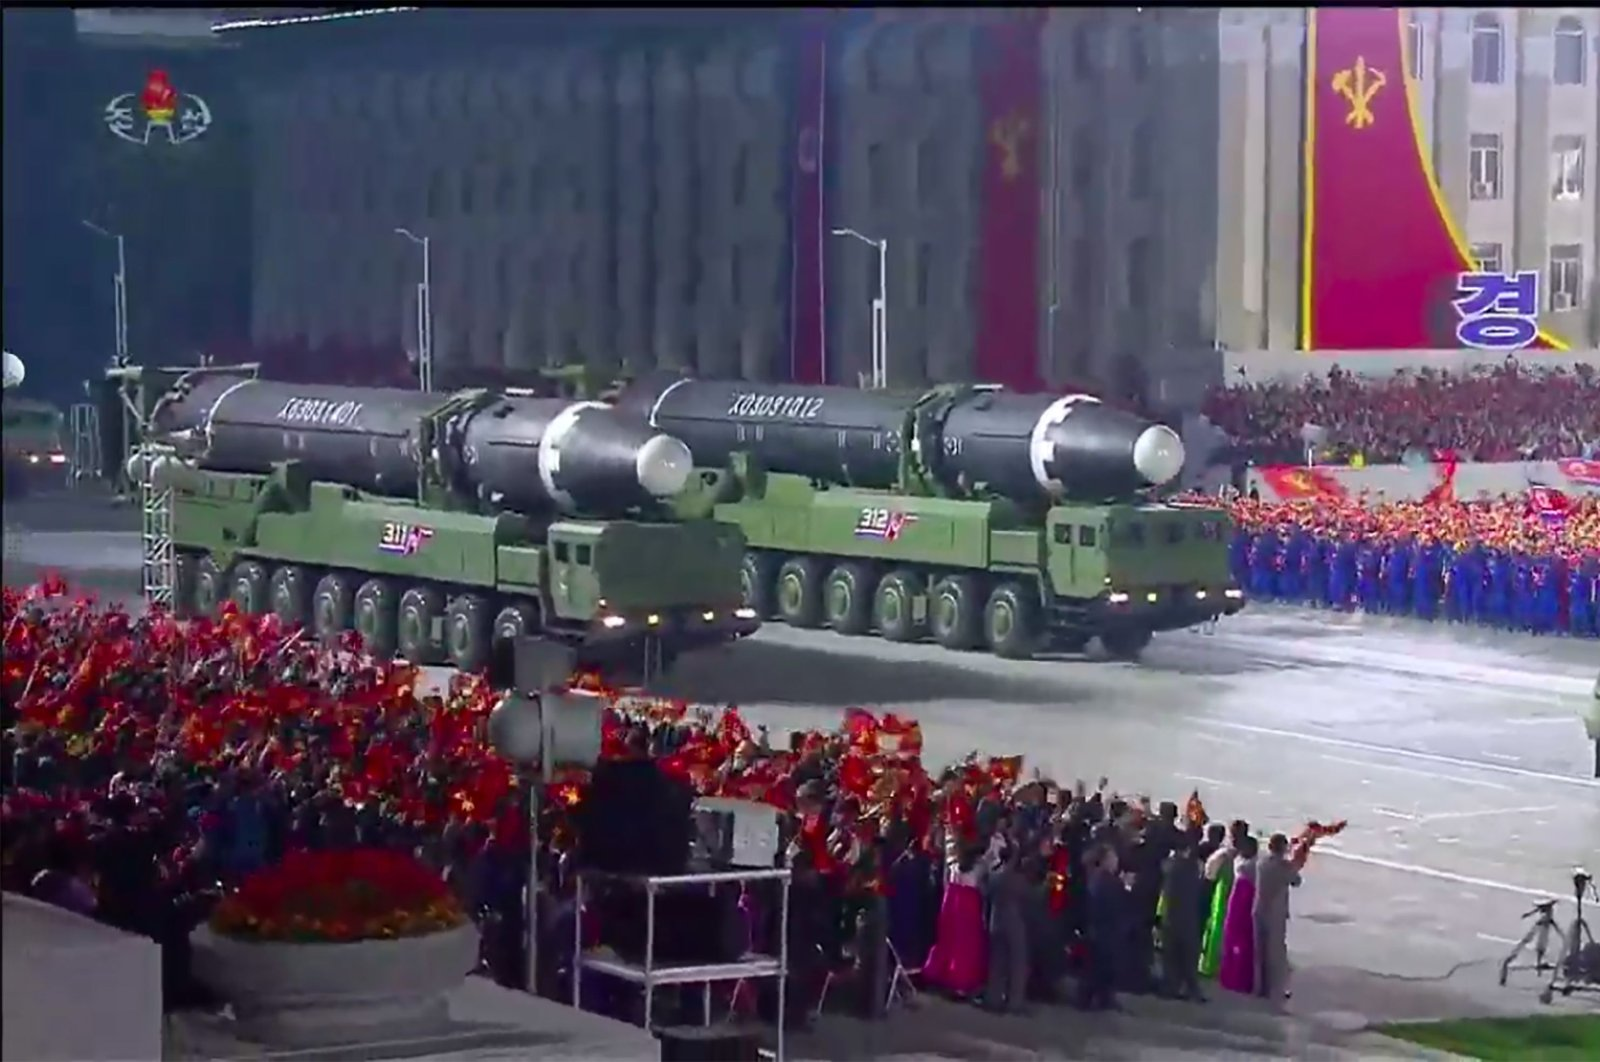 A screen grab taken from a KCNA broadcast shows what appears to be new North Korean intercontinental ballistic missiles during a military parade marking the 75th anniversary of the founding of the Workers' Party of Korea, on Kim Il Sung square in Pyongyang, Oct. 10, 2020  (Photo by - / KCNA VIA KNS / AFP)